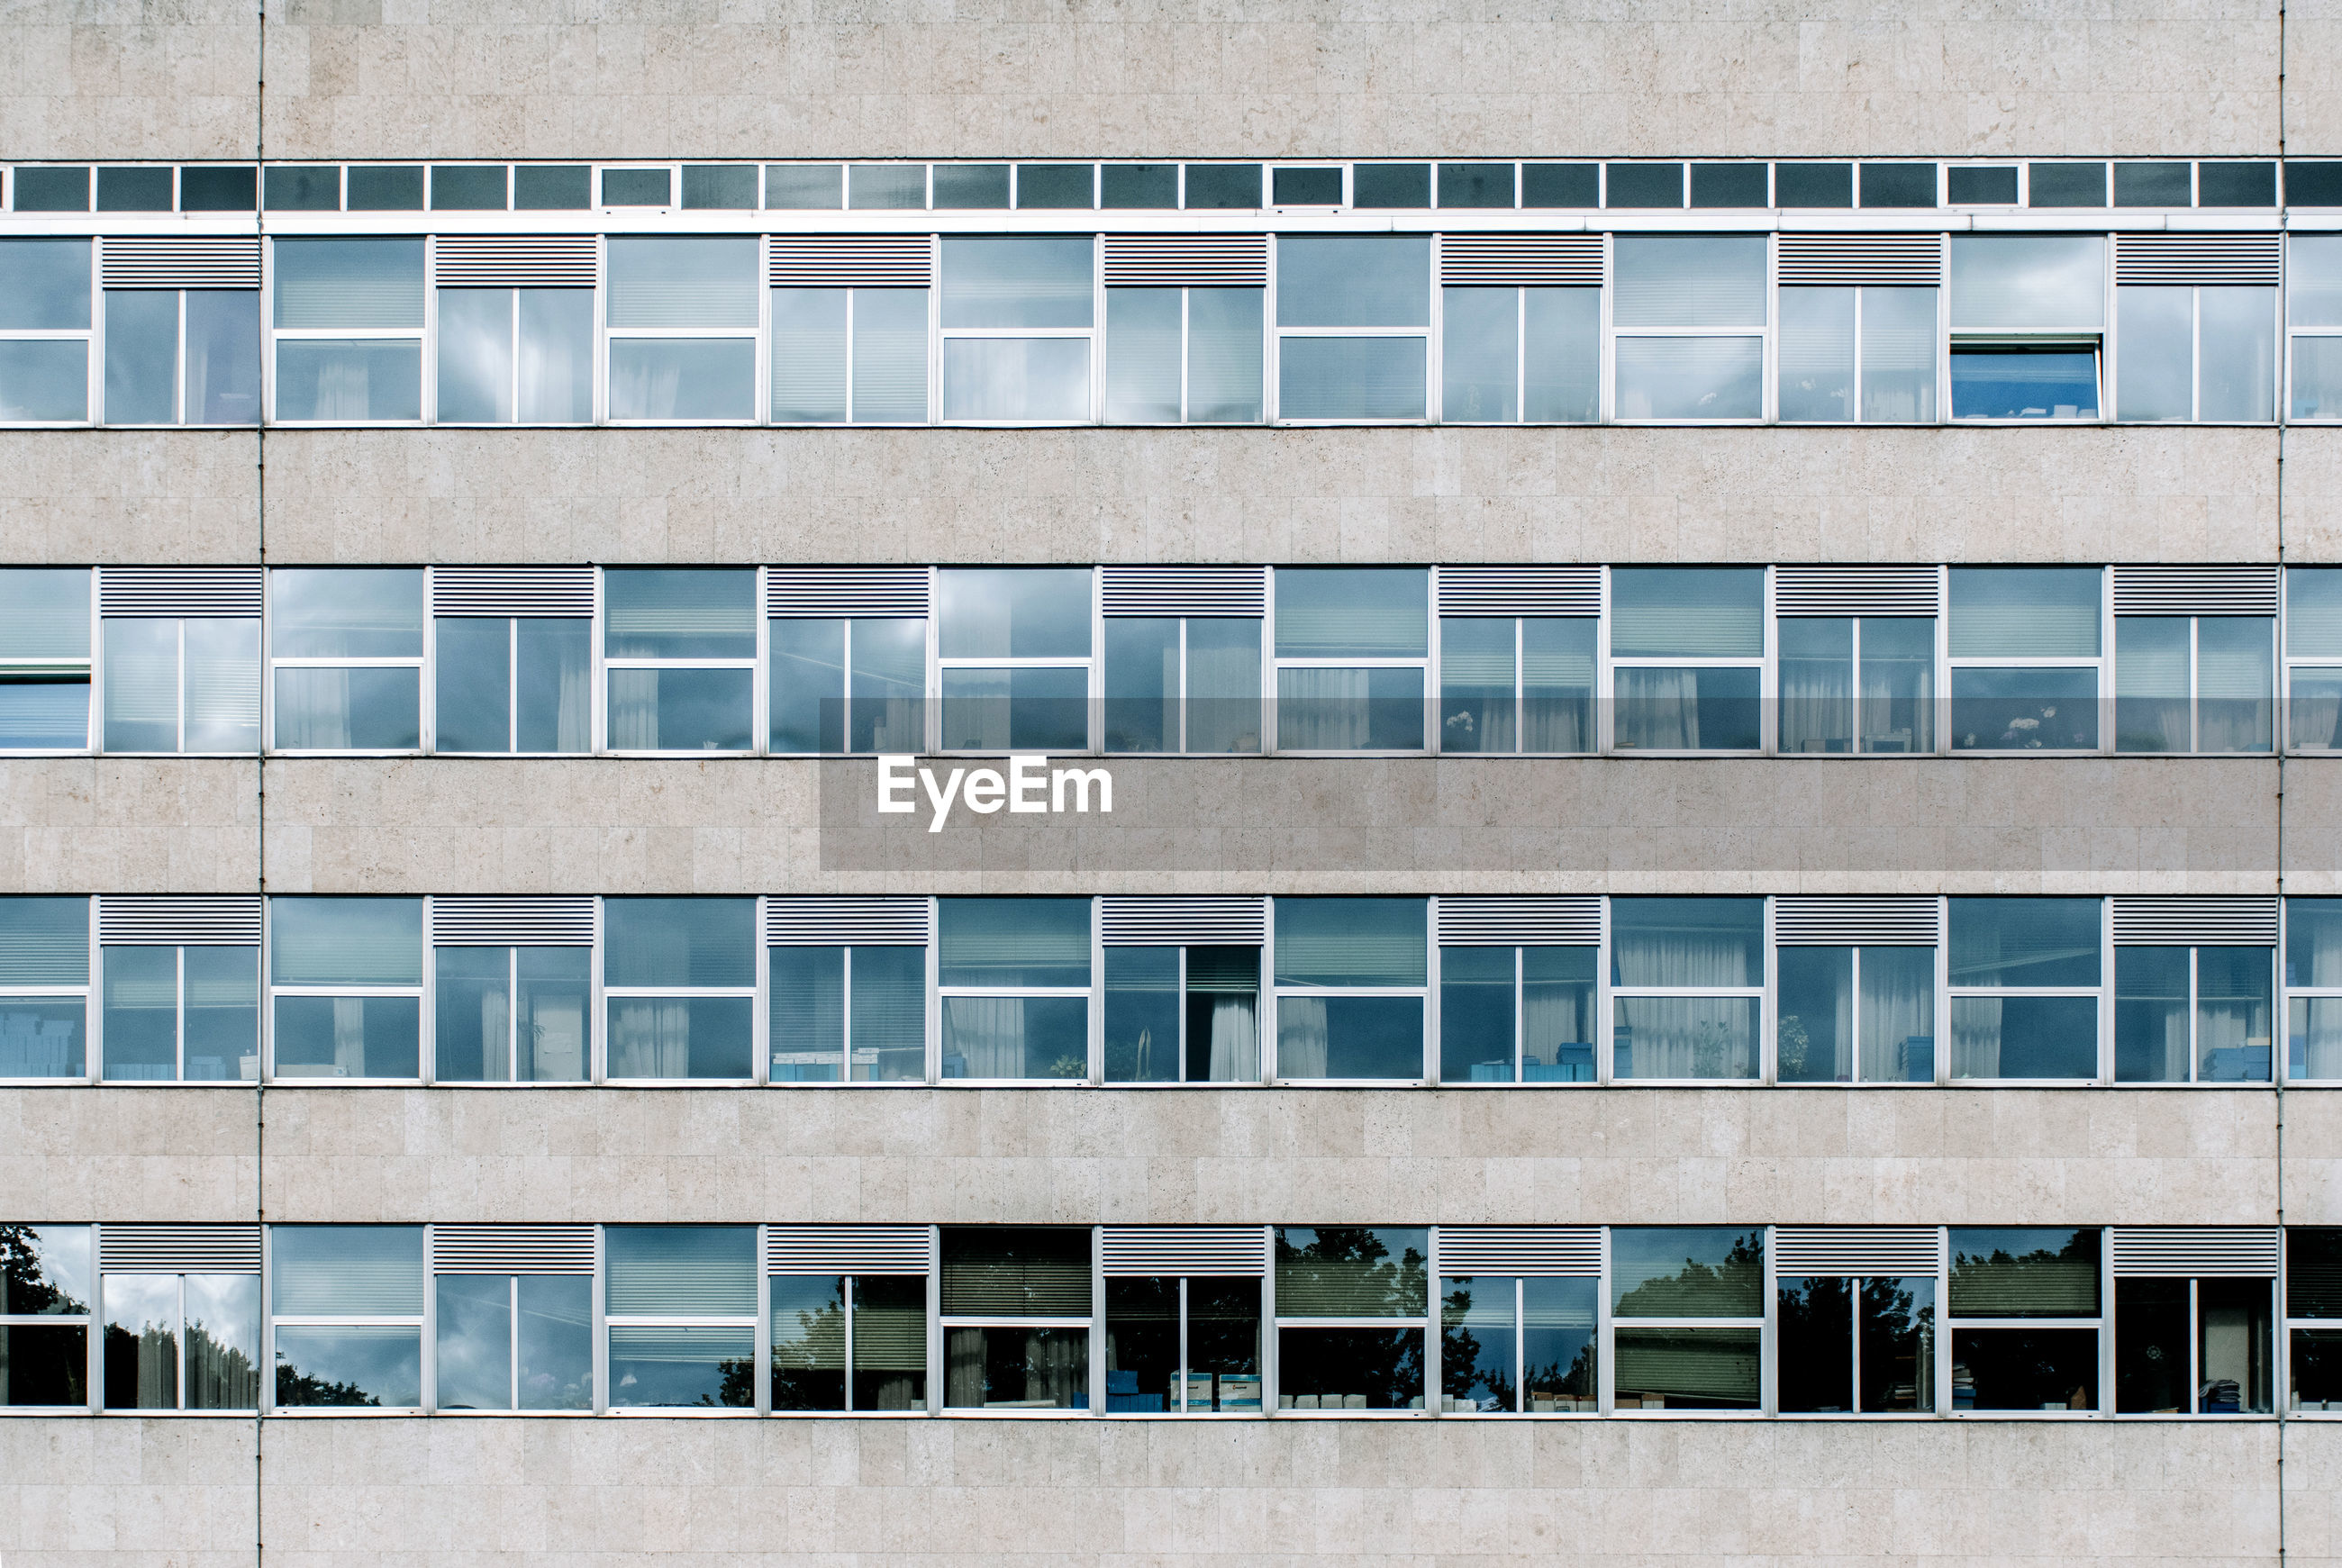 Architecture of office building, exterior, windows, in a row, minimalism, urban.